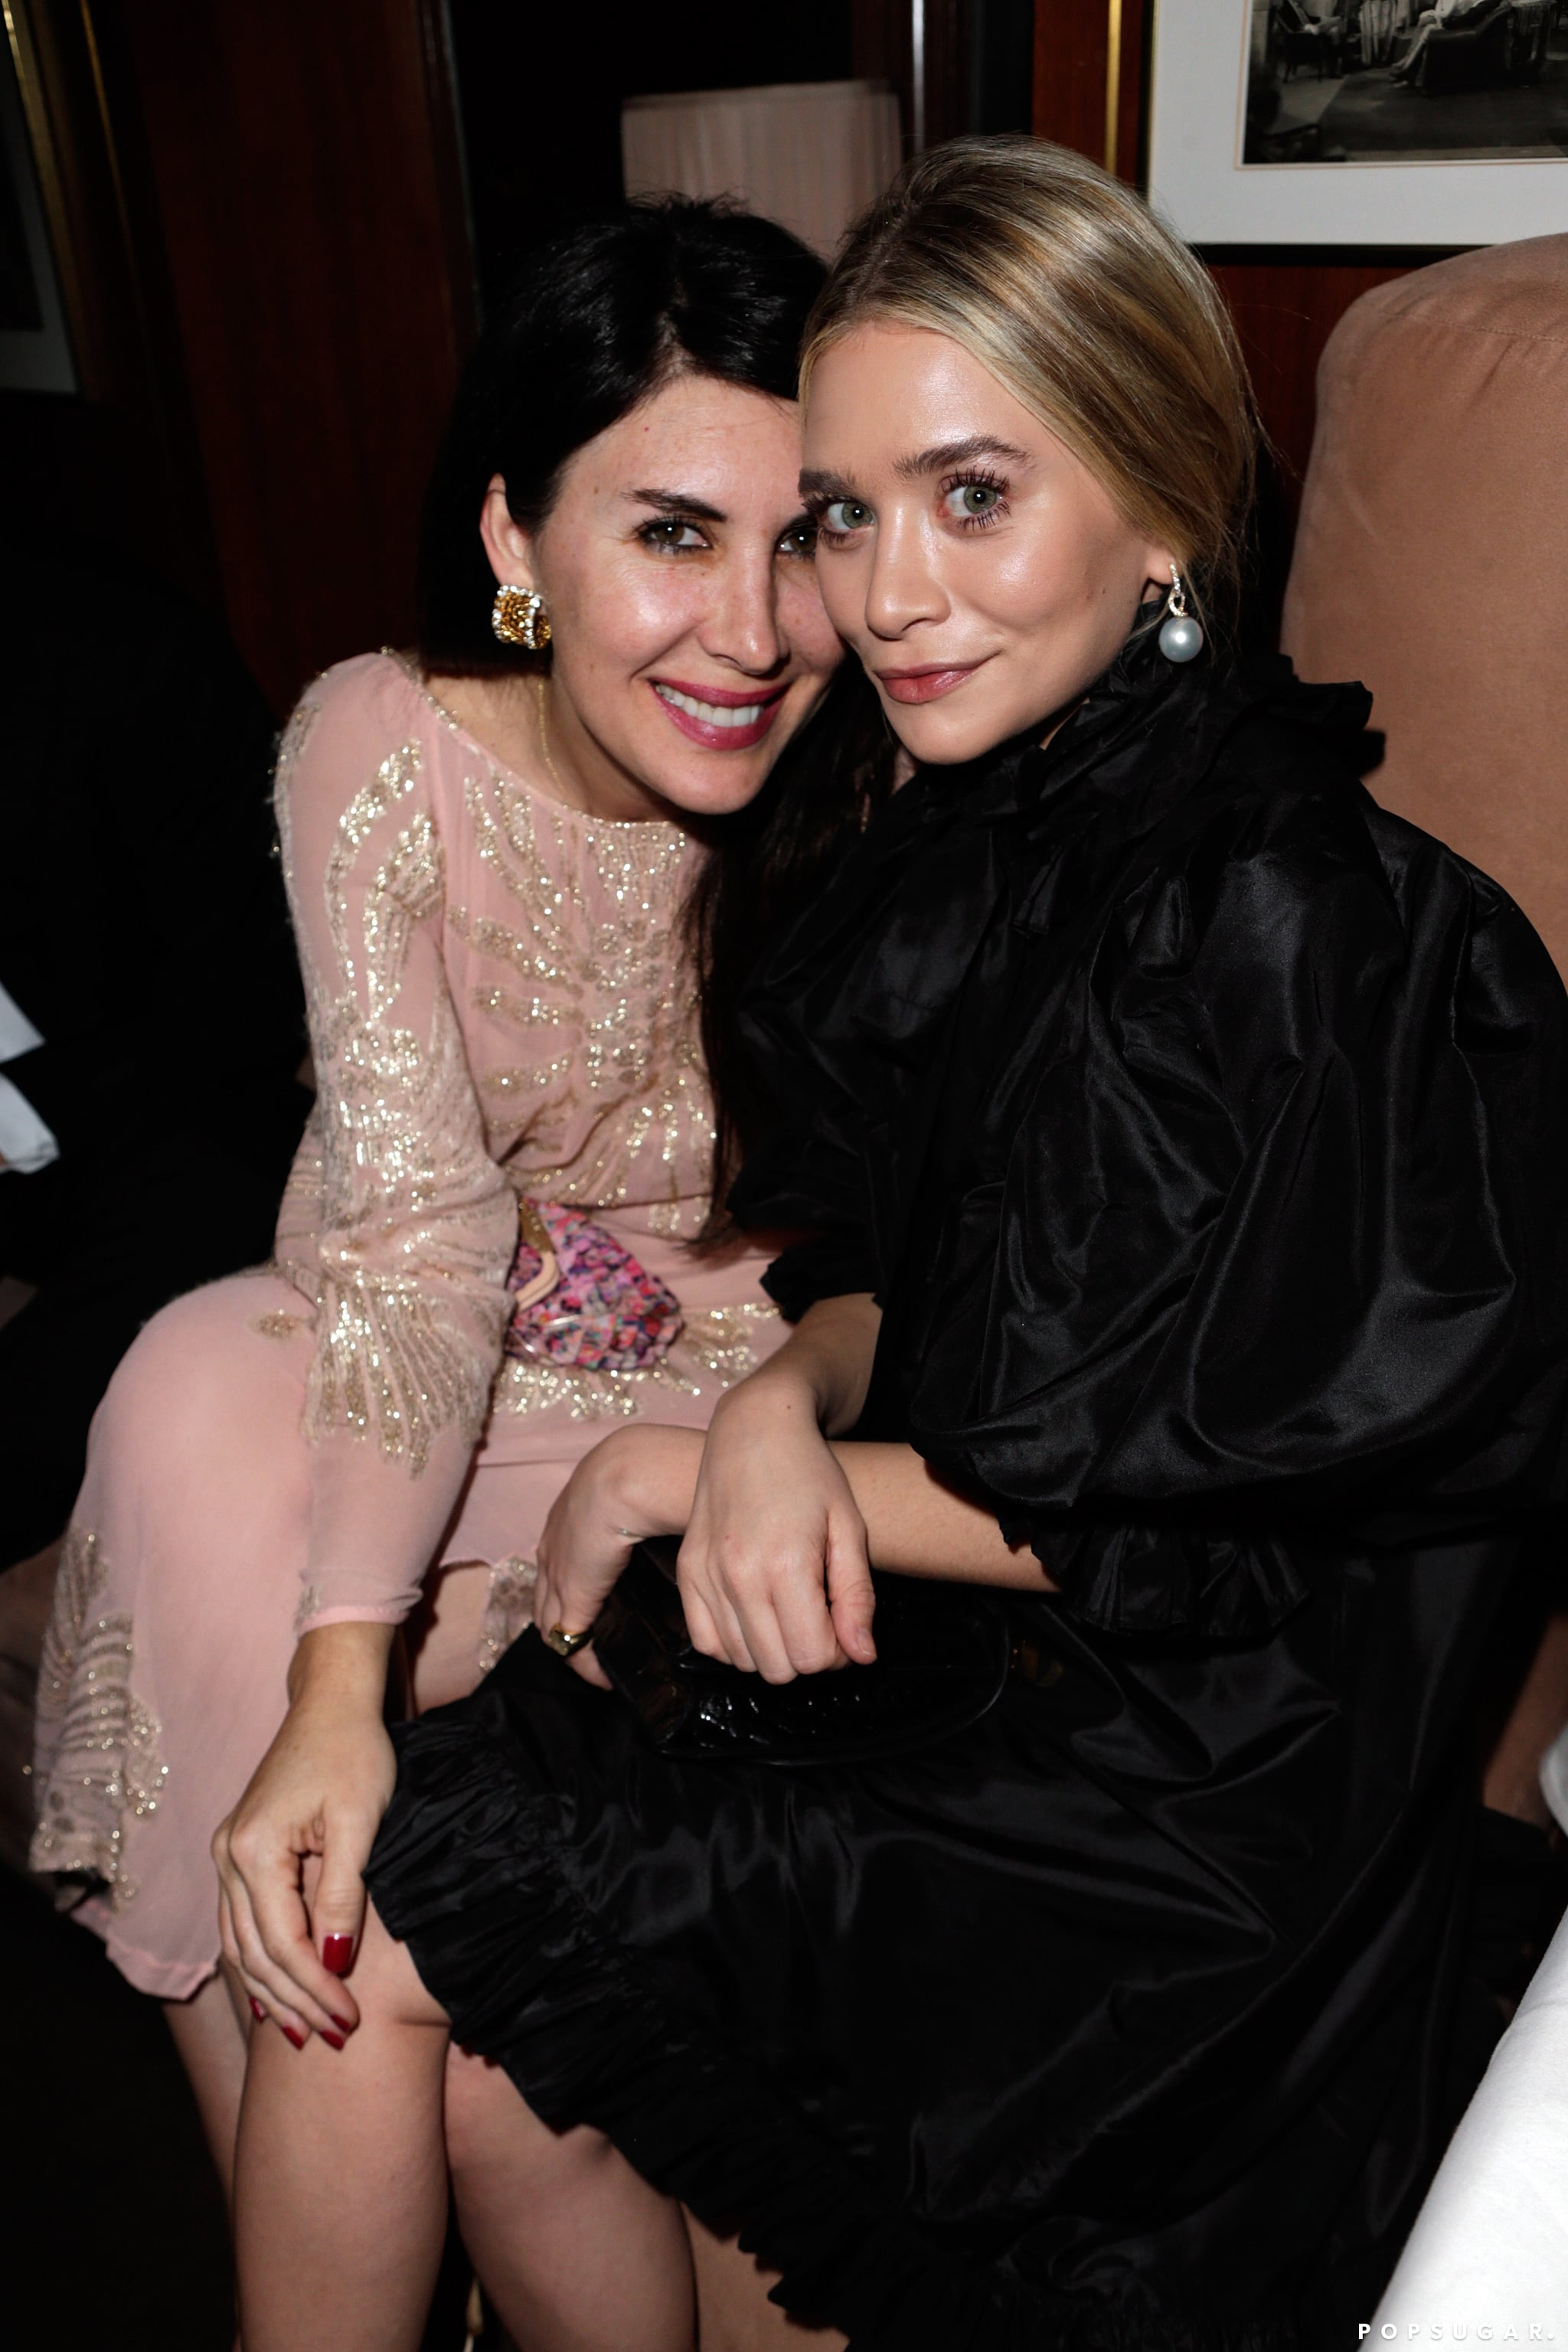 Ashley Olsen and stylist Estee Stanly sat together at Vanity Fair's Oscar after-party.